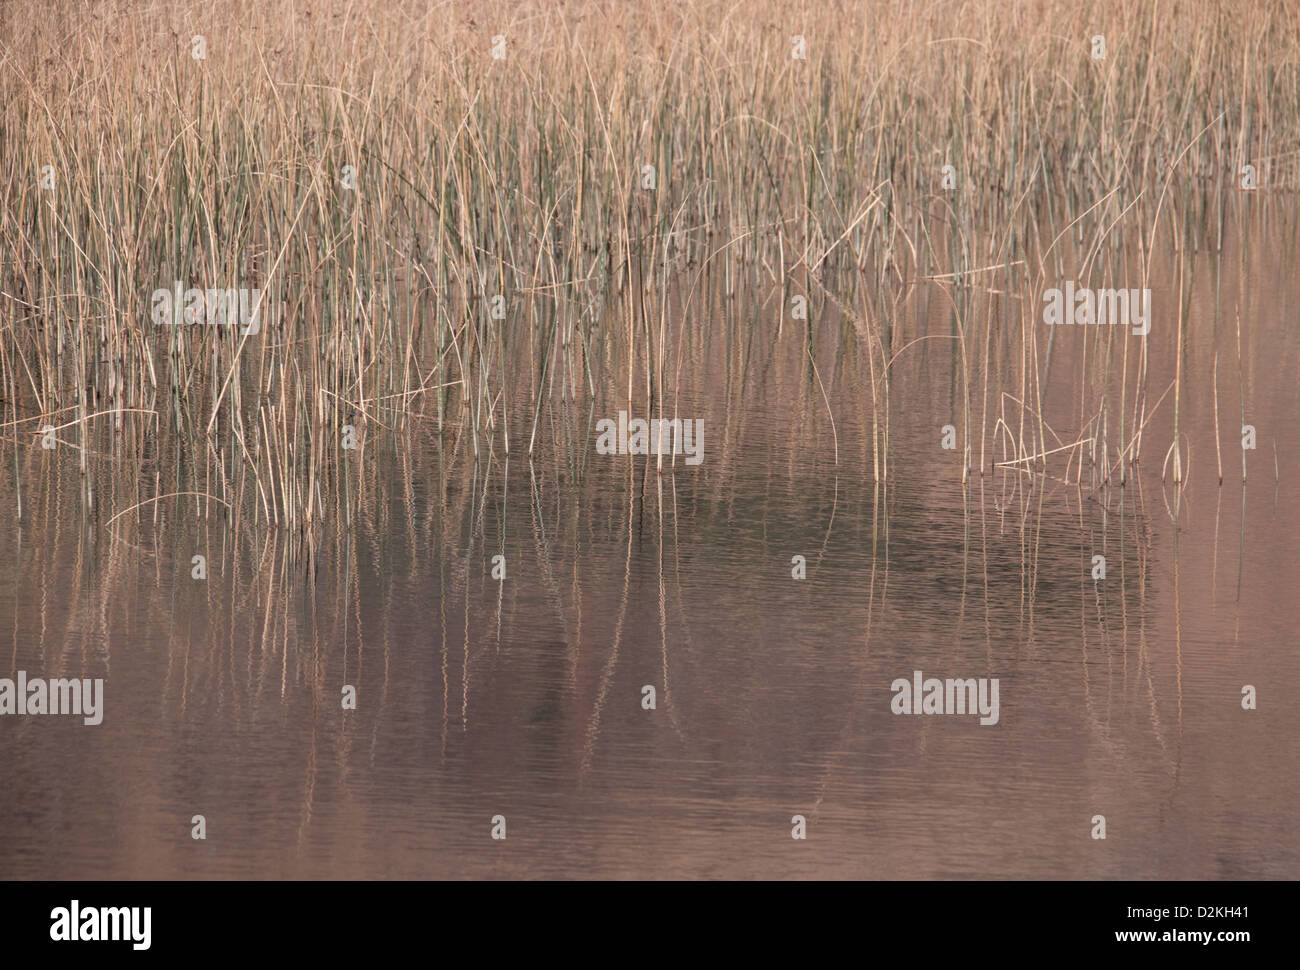 Reeds in Water - Stock Image